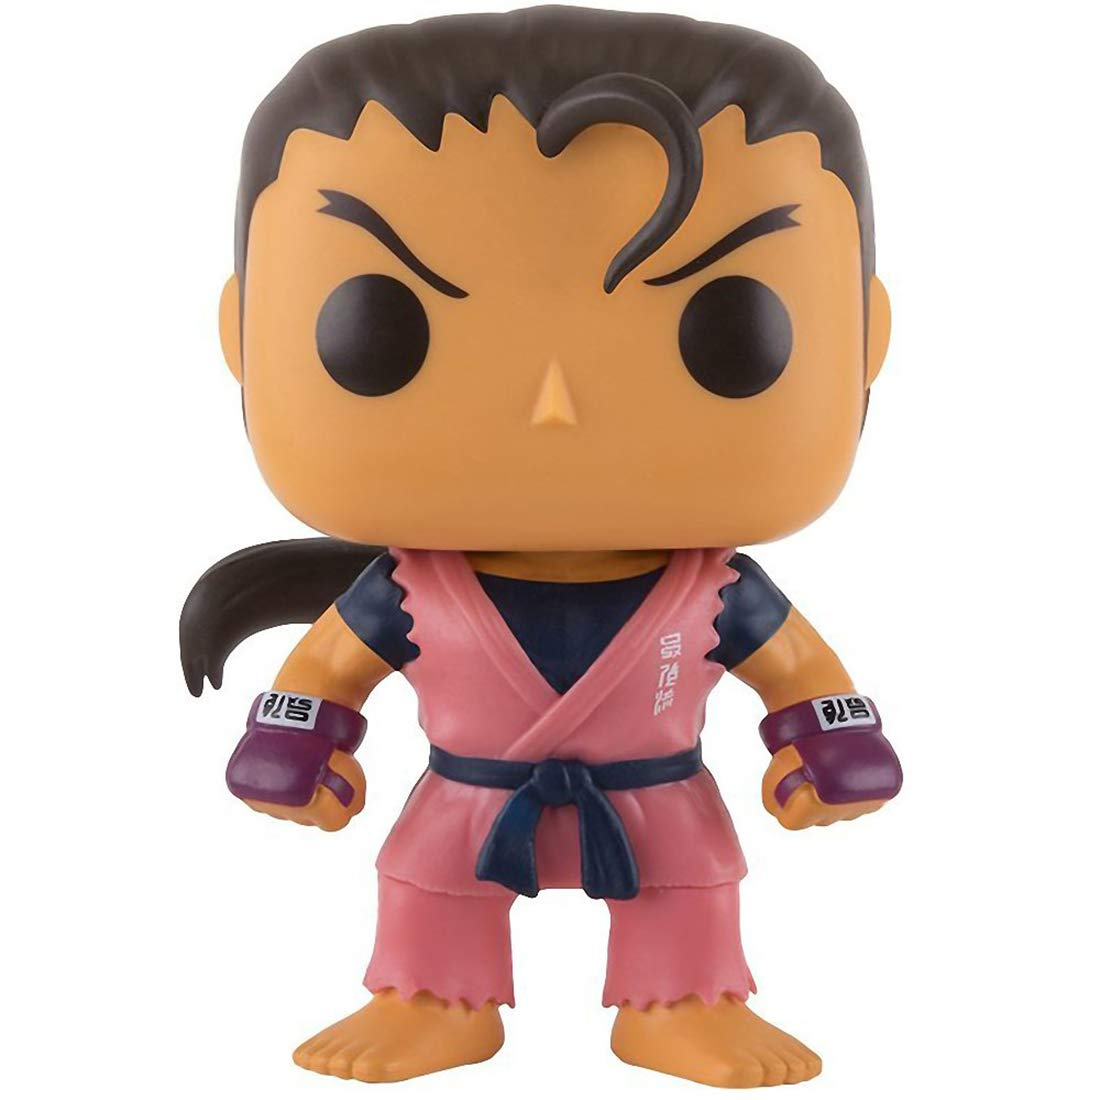 Compatible PET Plastic Graphical Protector Bundle BCC9U5072 Games Vinyl Figure /& 1 POP Funko Dan: Street Fighter x POP #142 // 11659 - B